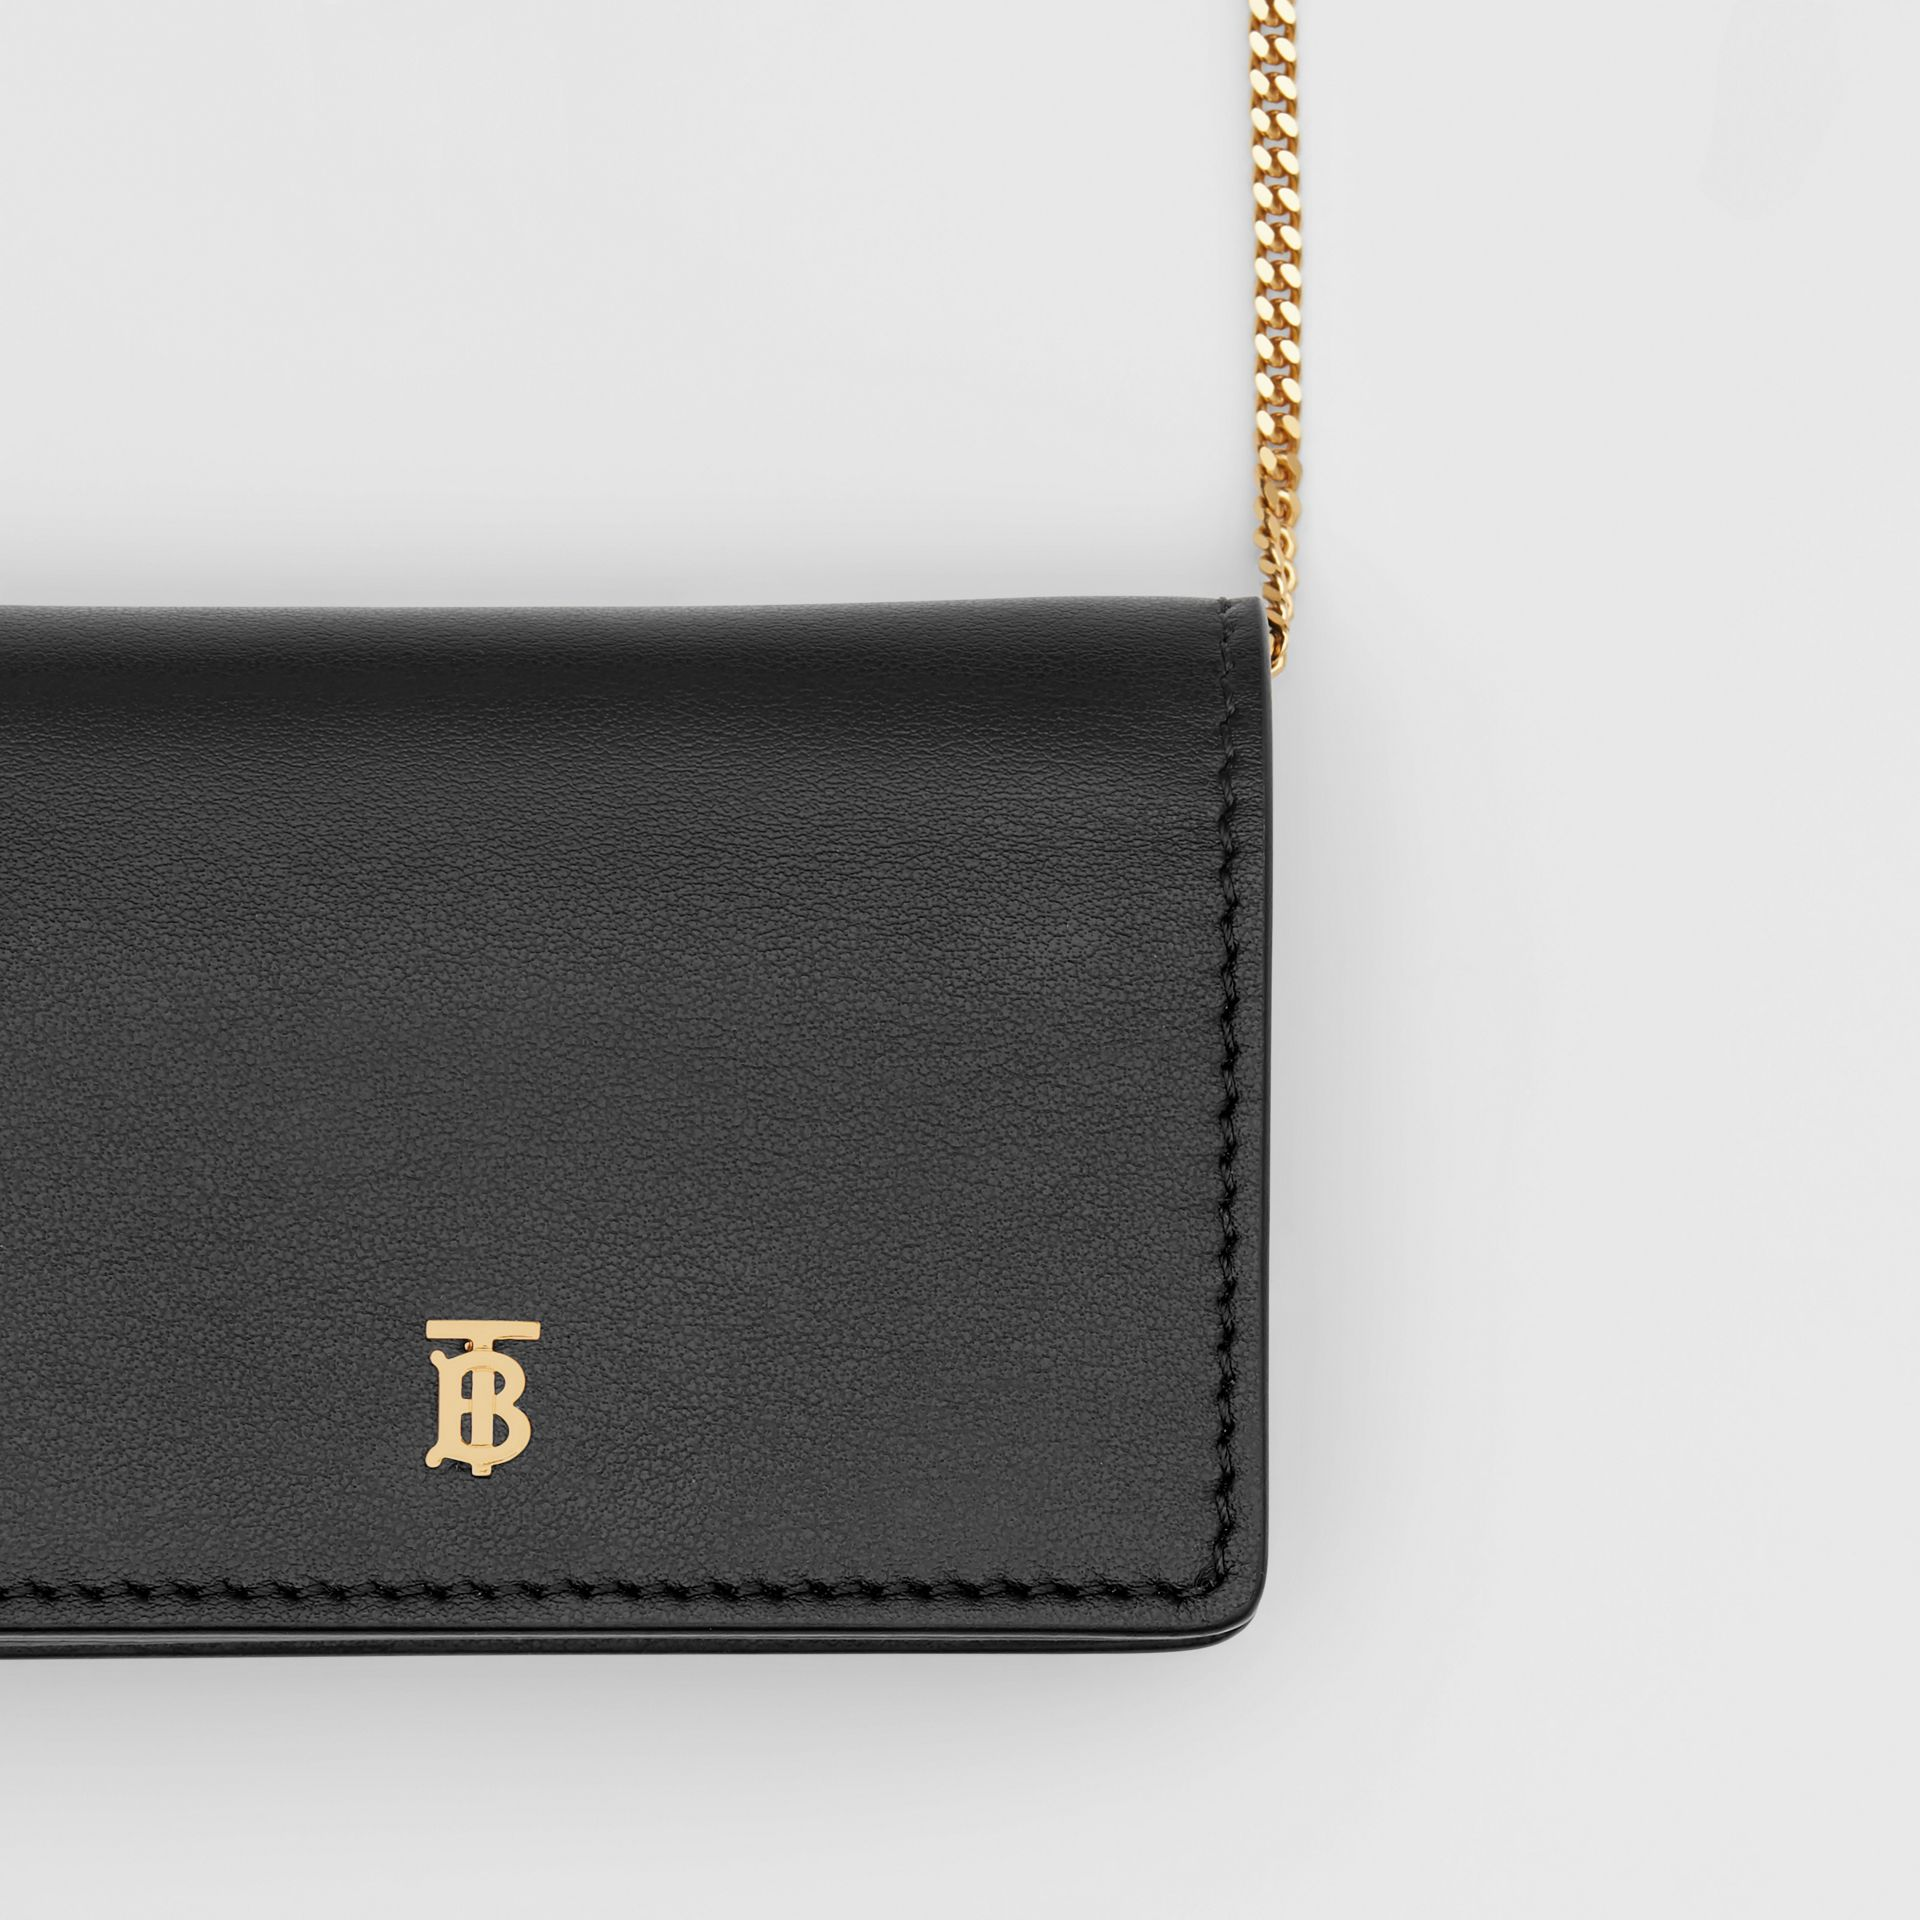 Leather Card Case with Detachable Strap in Black - Women | Burberry United Kingdom - gallery image 1